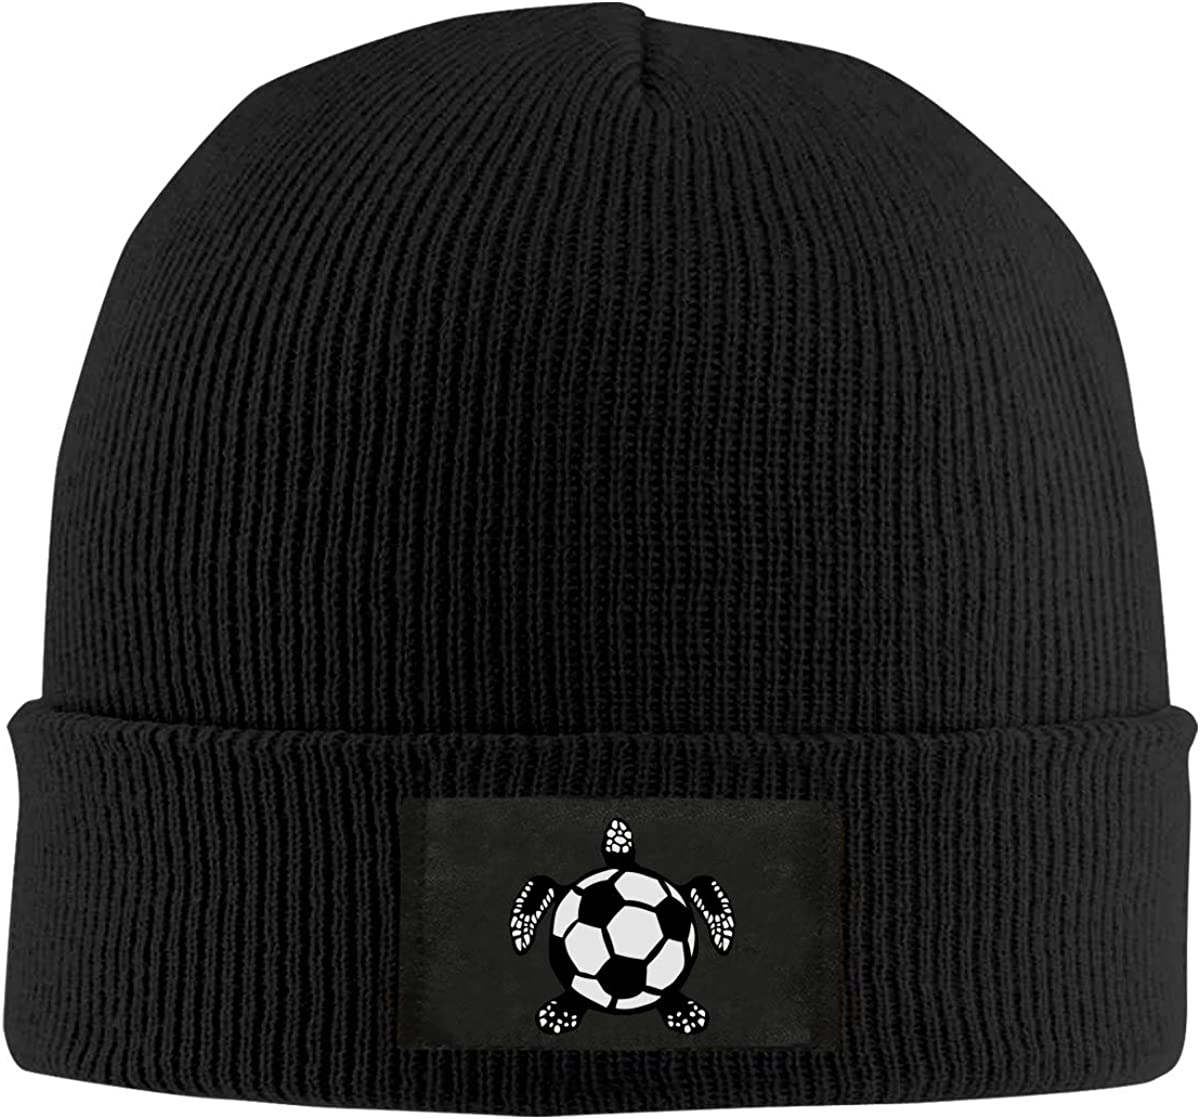 Soccer Sea Turtle 3 Daily Knitted Caps Beanies Hats Mens Women